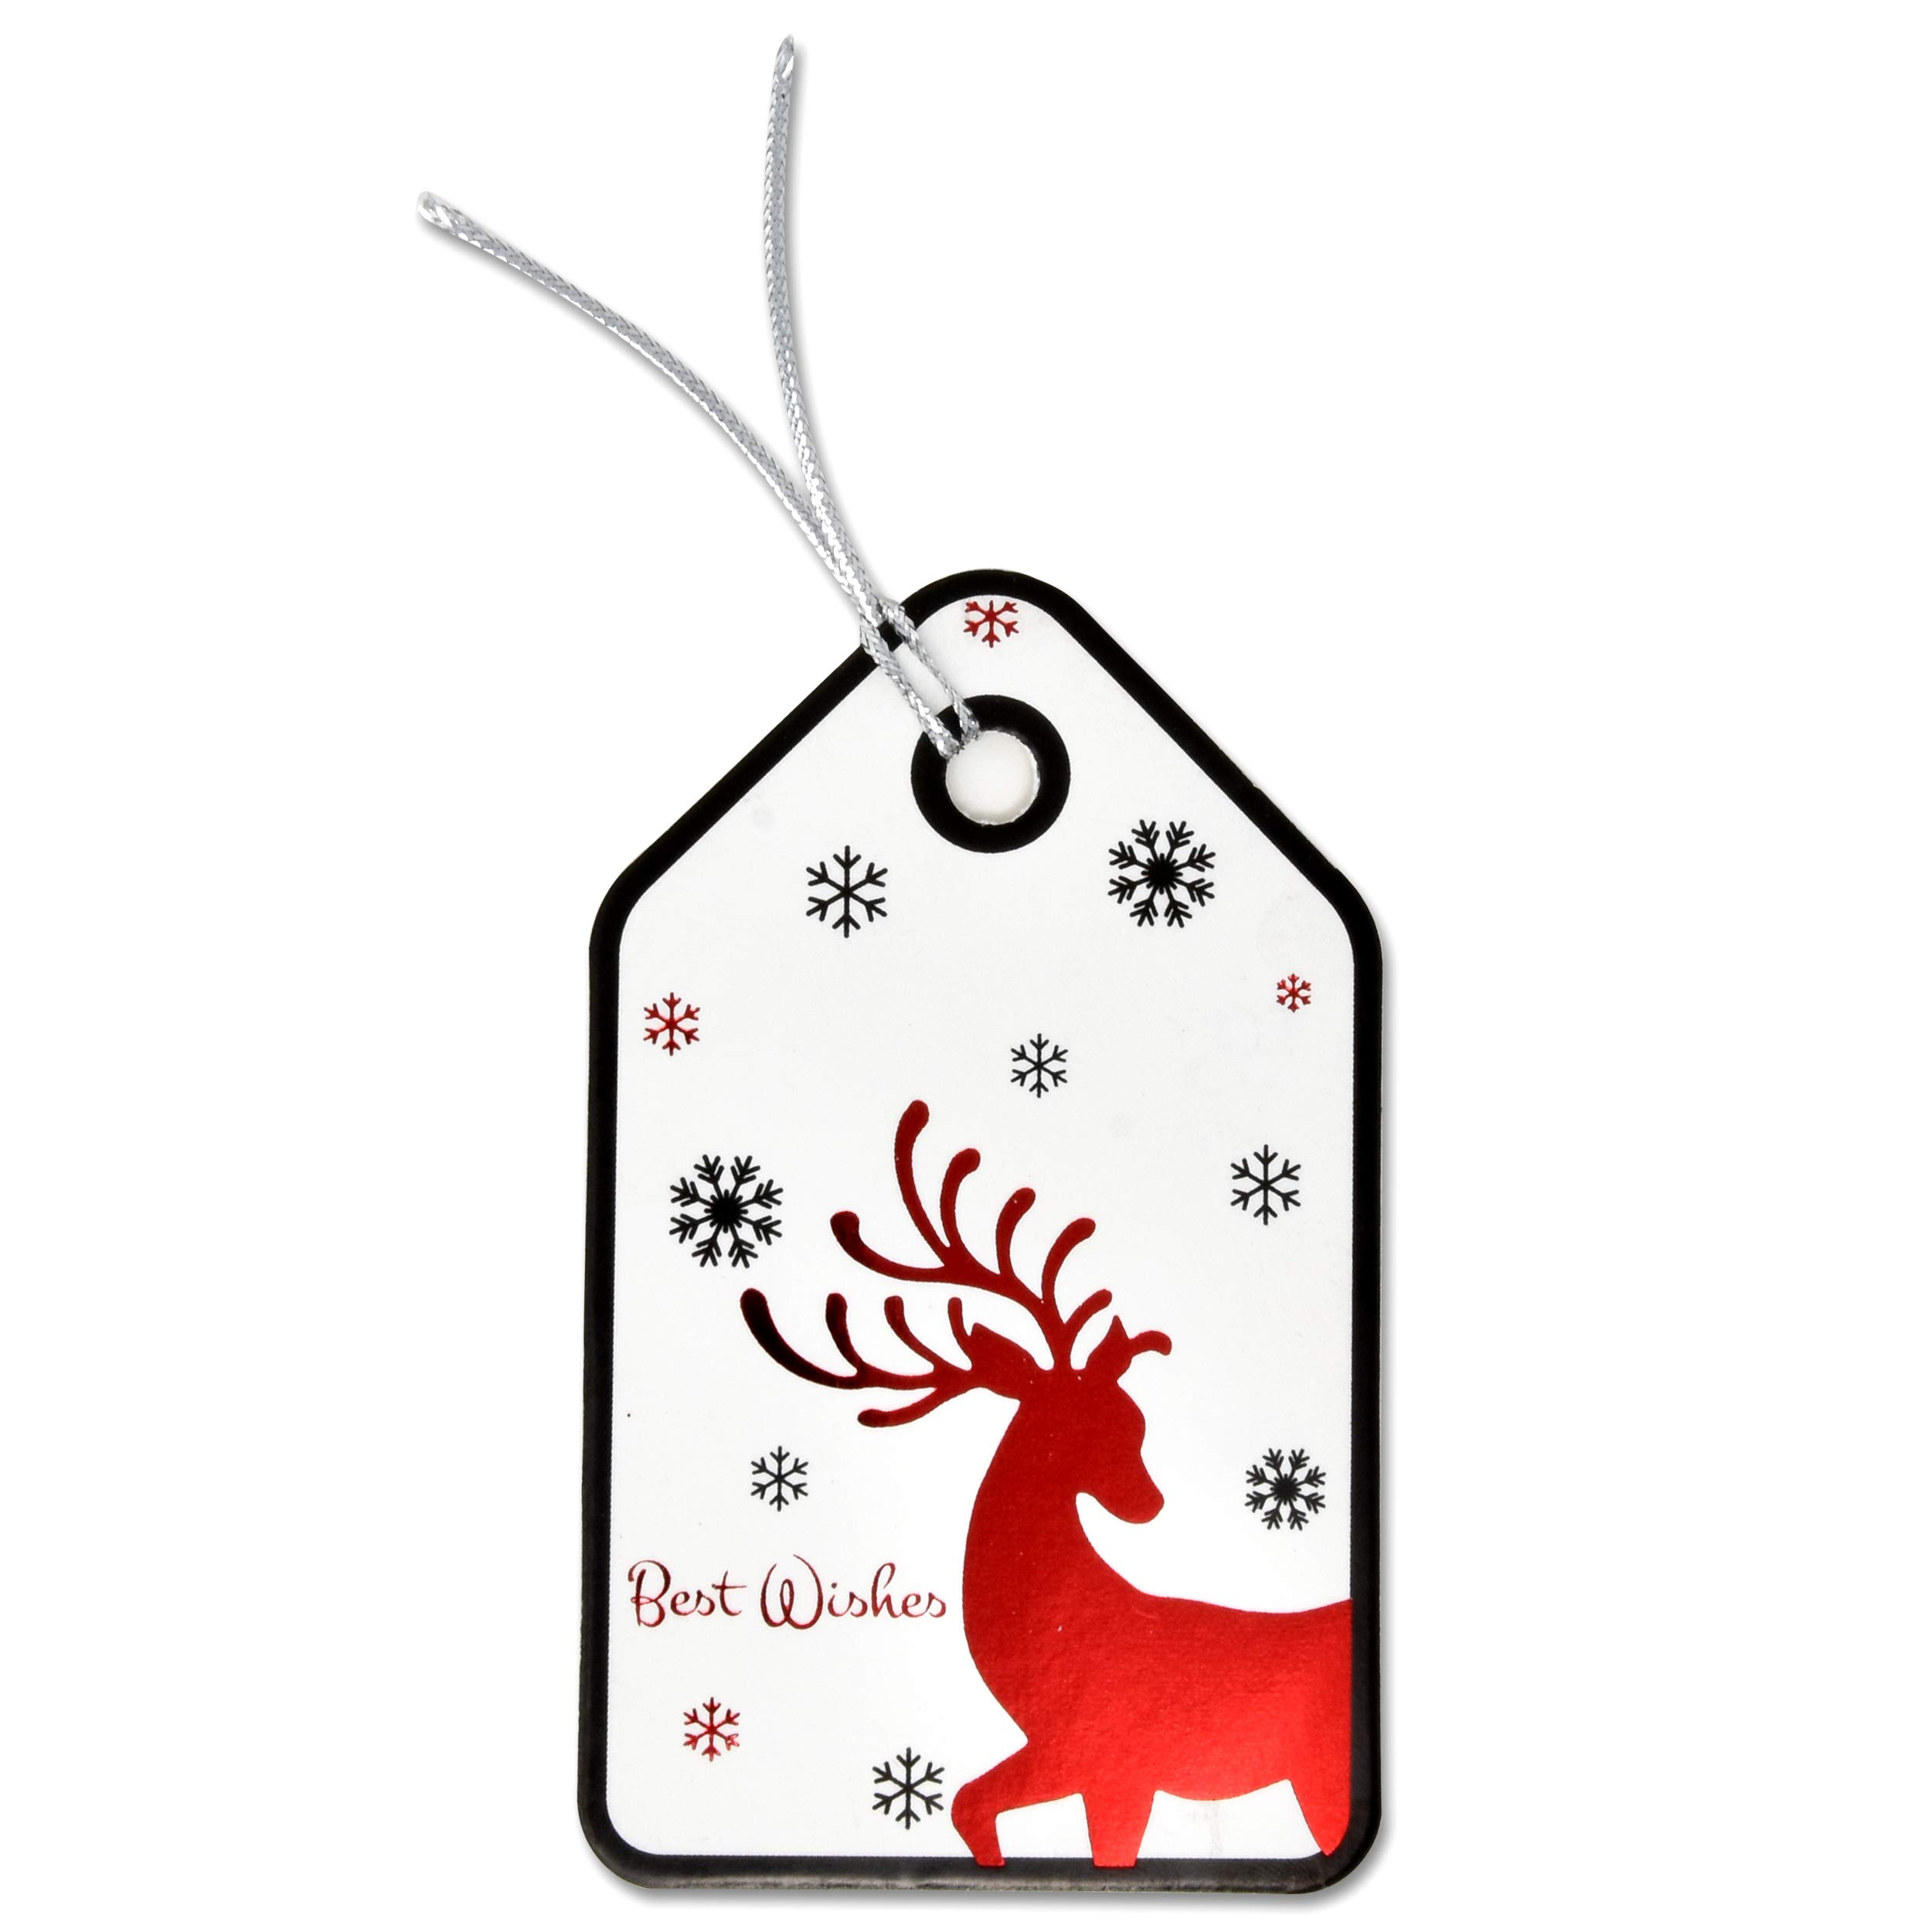 Personalized Christmas Gift Tags: 120 Christmas Gift Tags With Ribbon Tie Strings